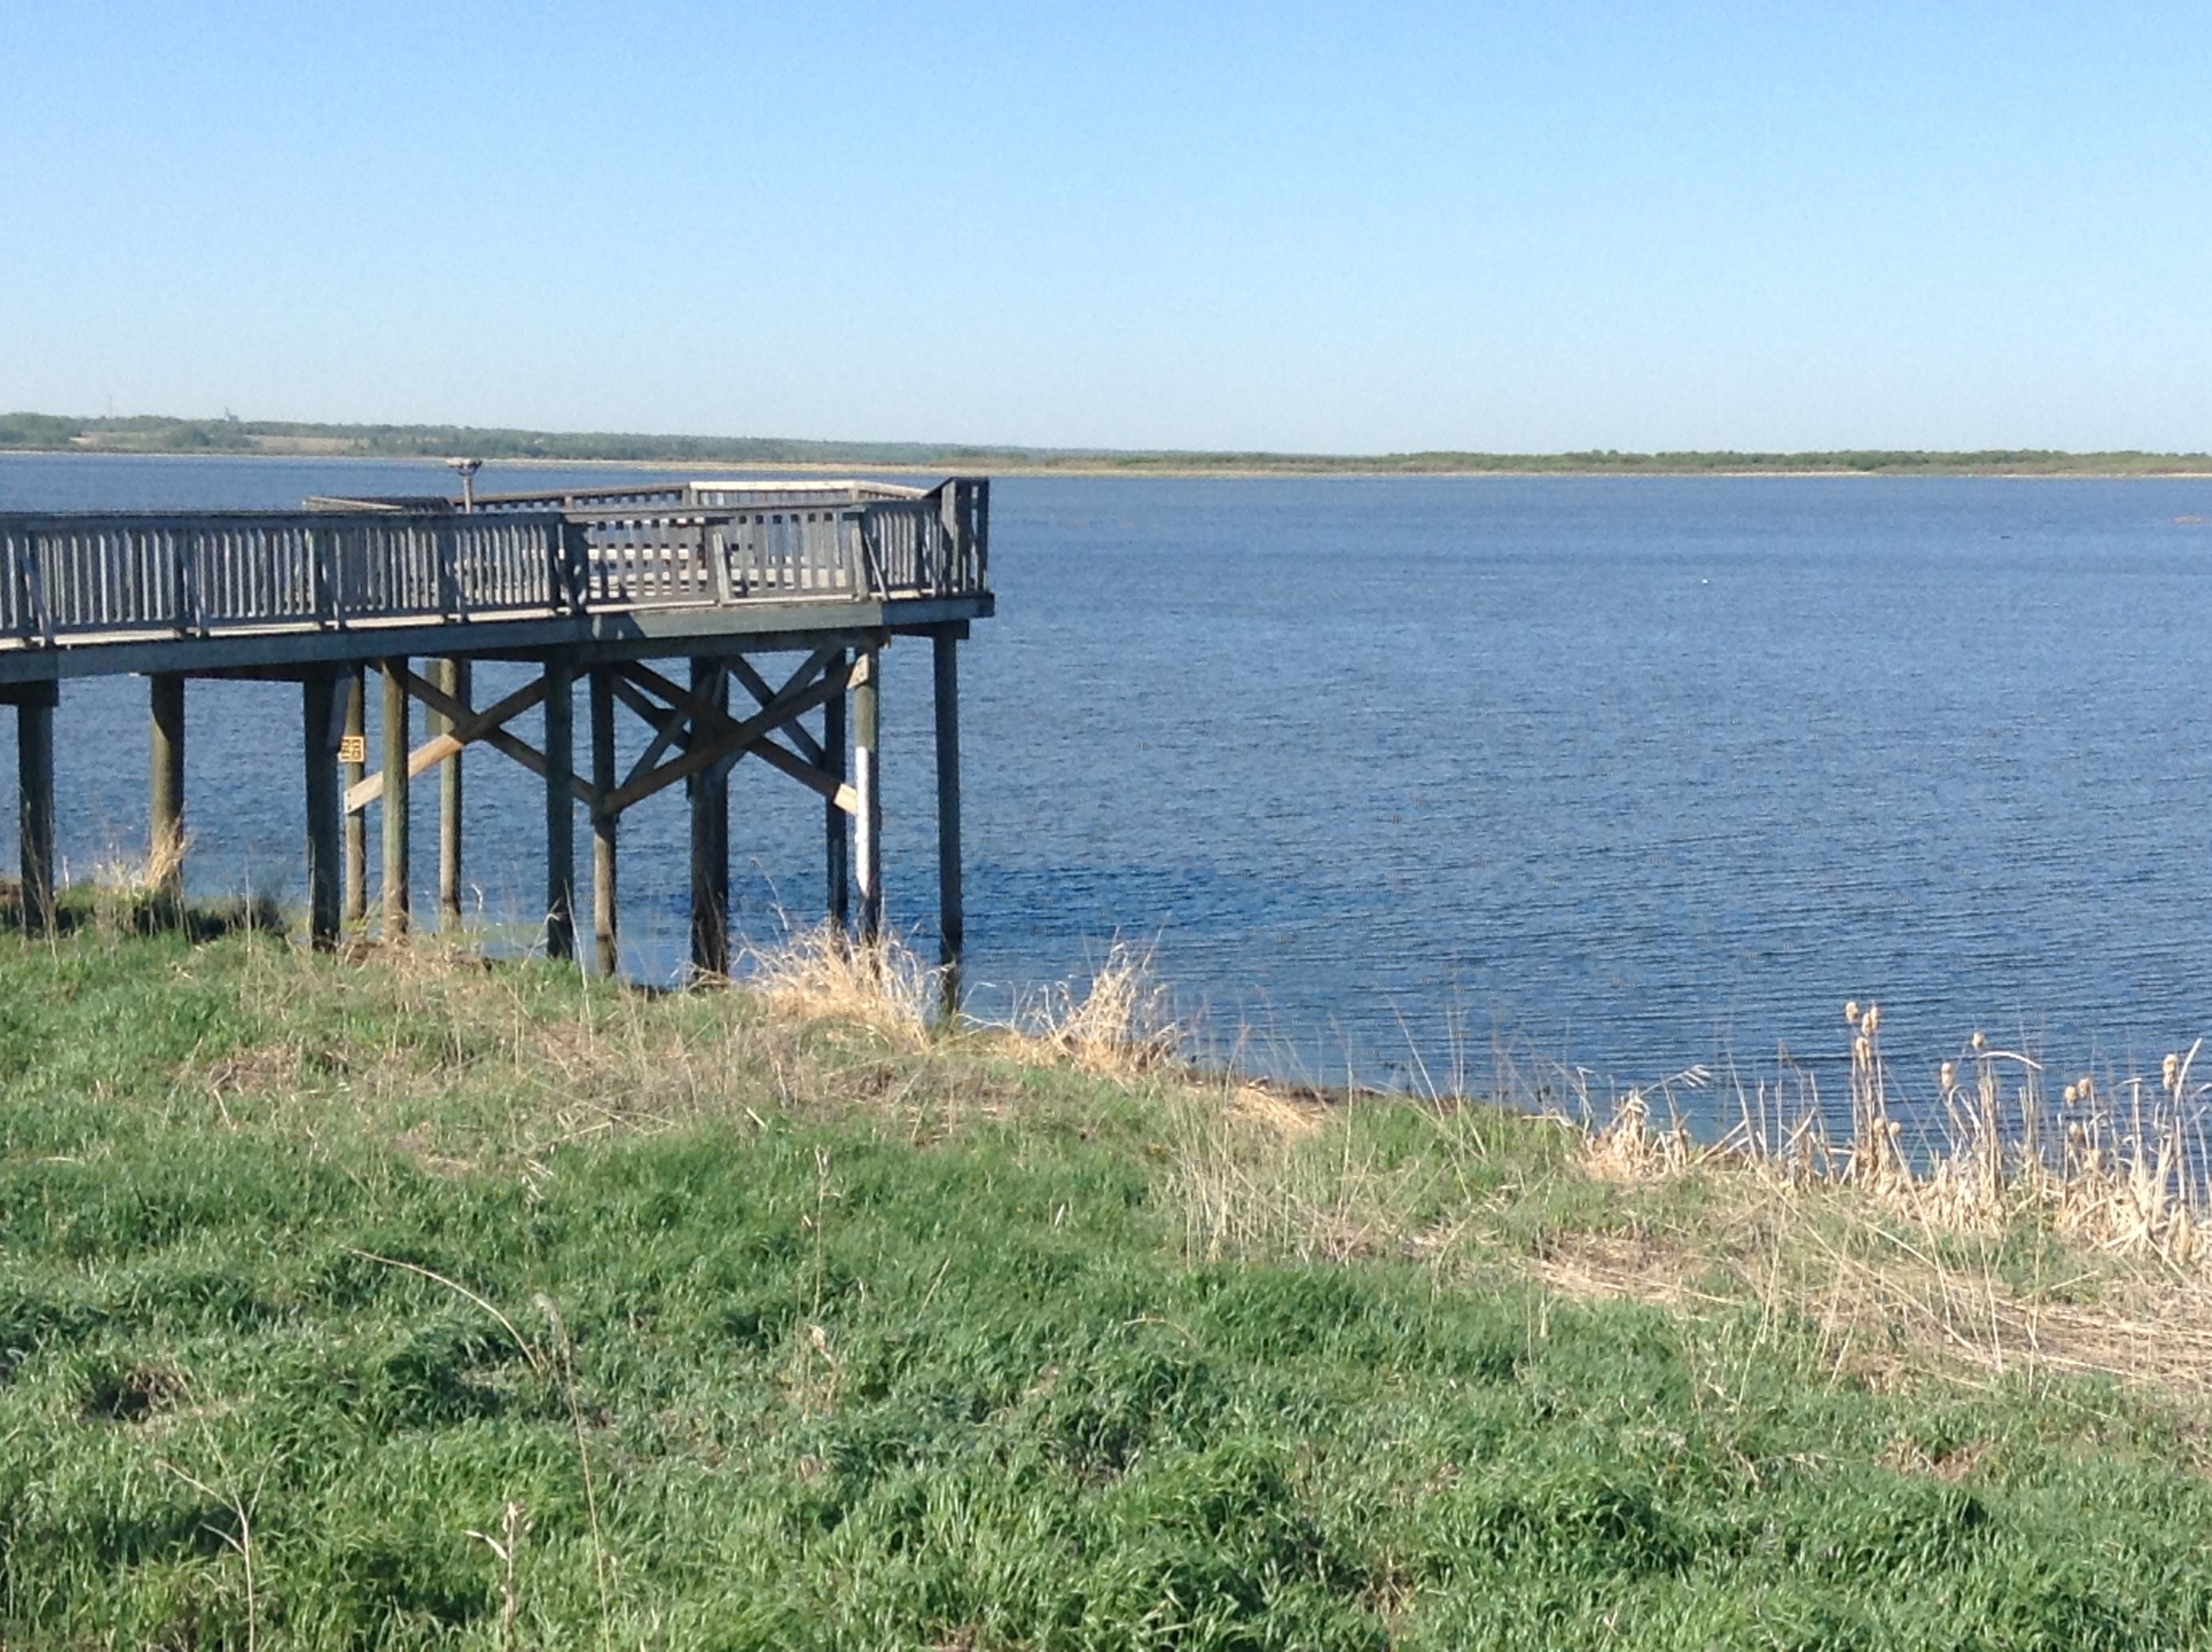 Get a better look at Big Lake from the viewing platform accessible from the Red Willow Trail System!